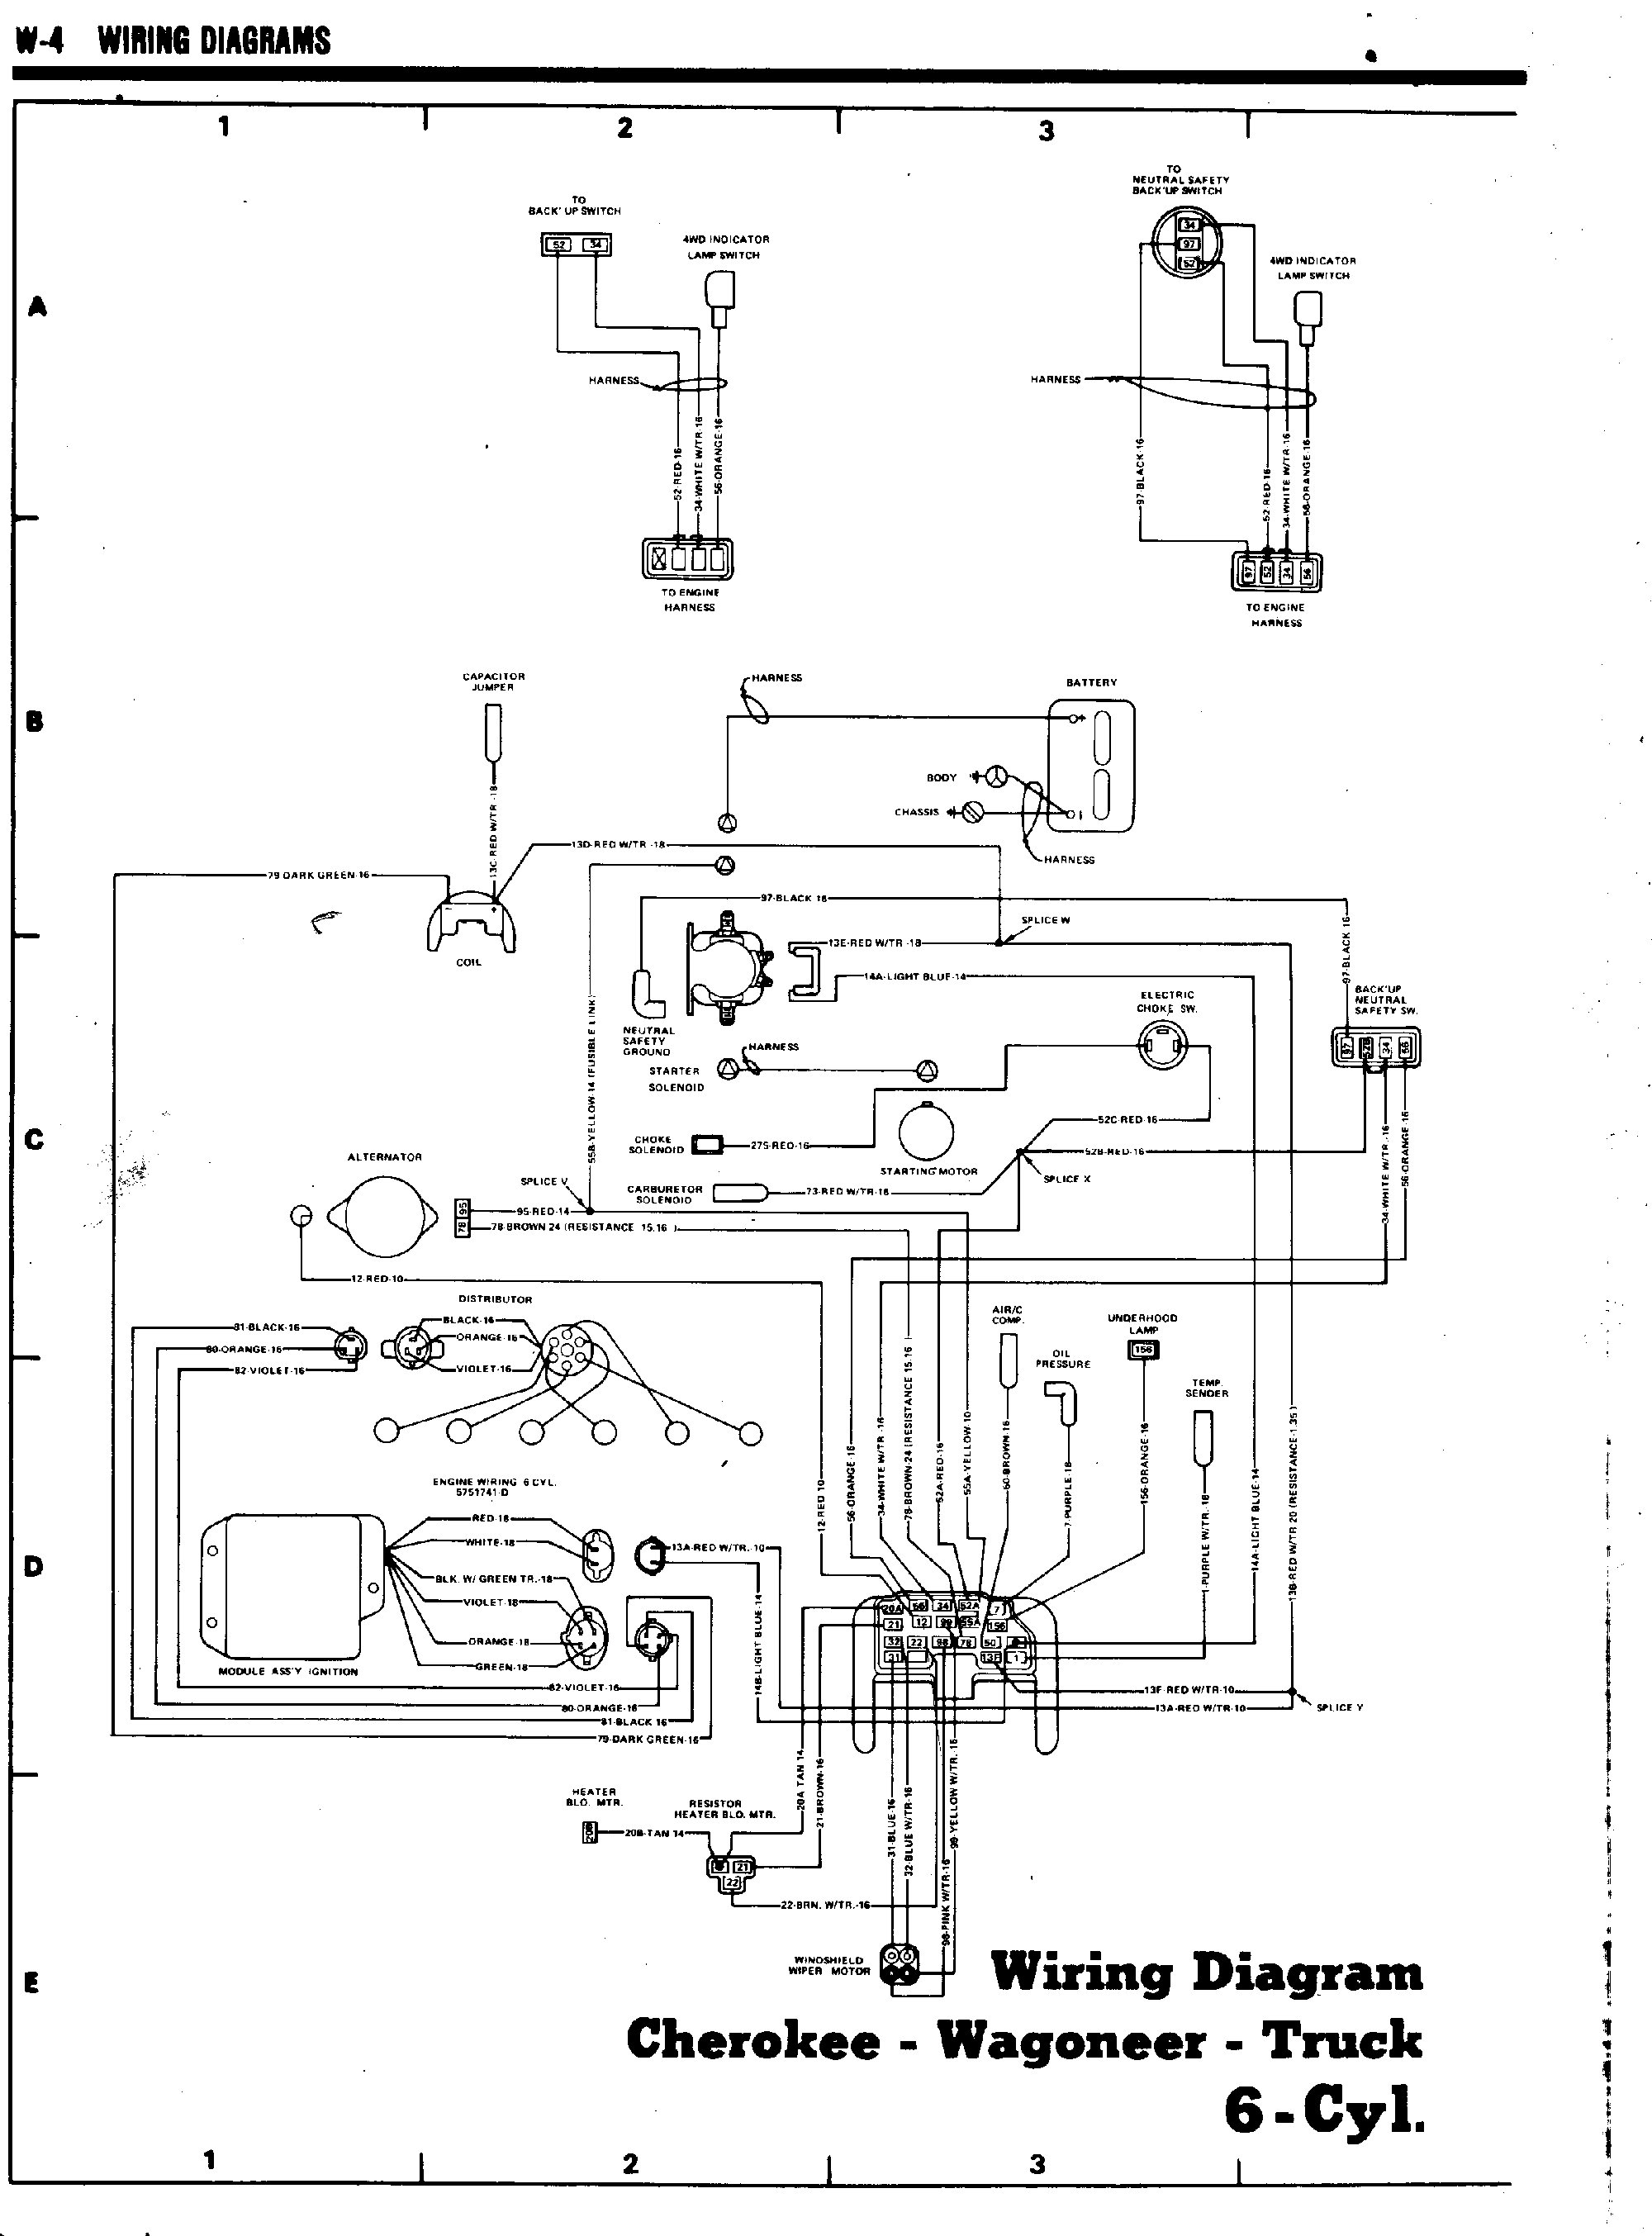 jeep wagoneer wiring diagram data wiring schema 1977 jeep cj7 wiring-diagram  1985 jeep cj7